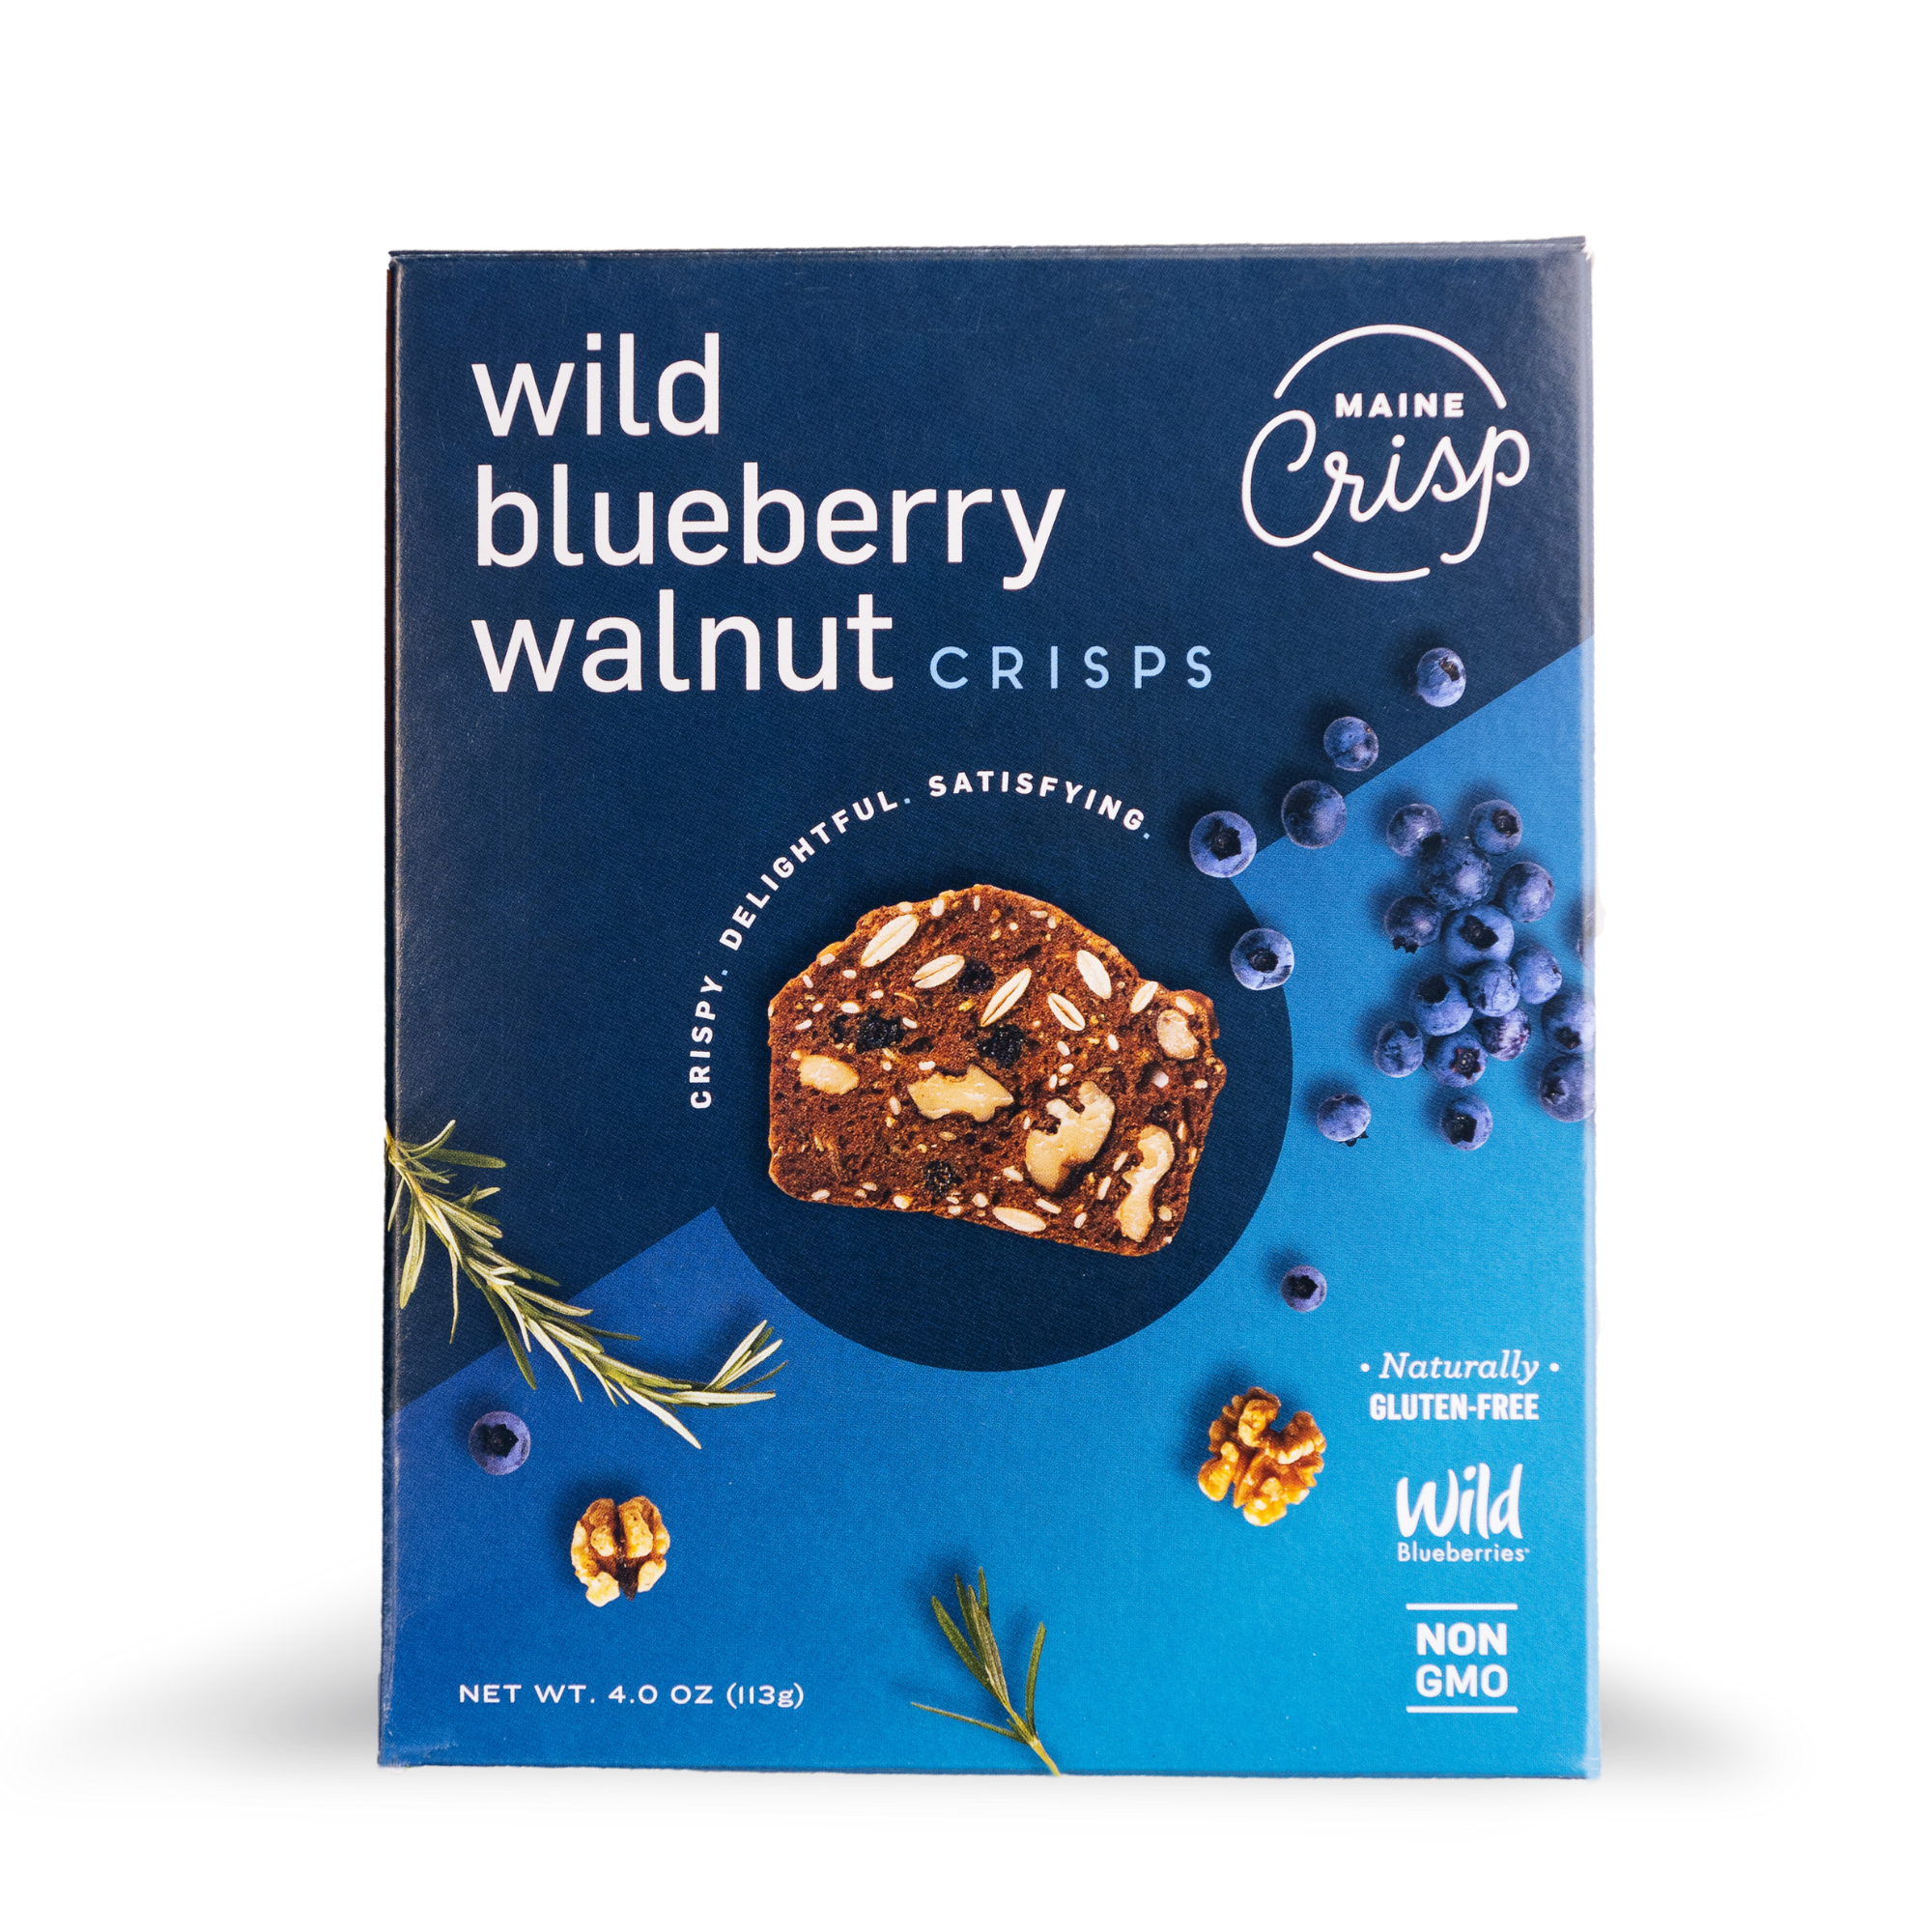 a bright blue box with photographs of wild blueberries, rosemary, and walnuts with a gluten-free crisp in the middle